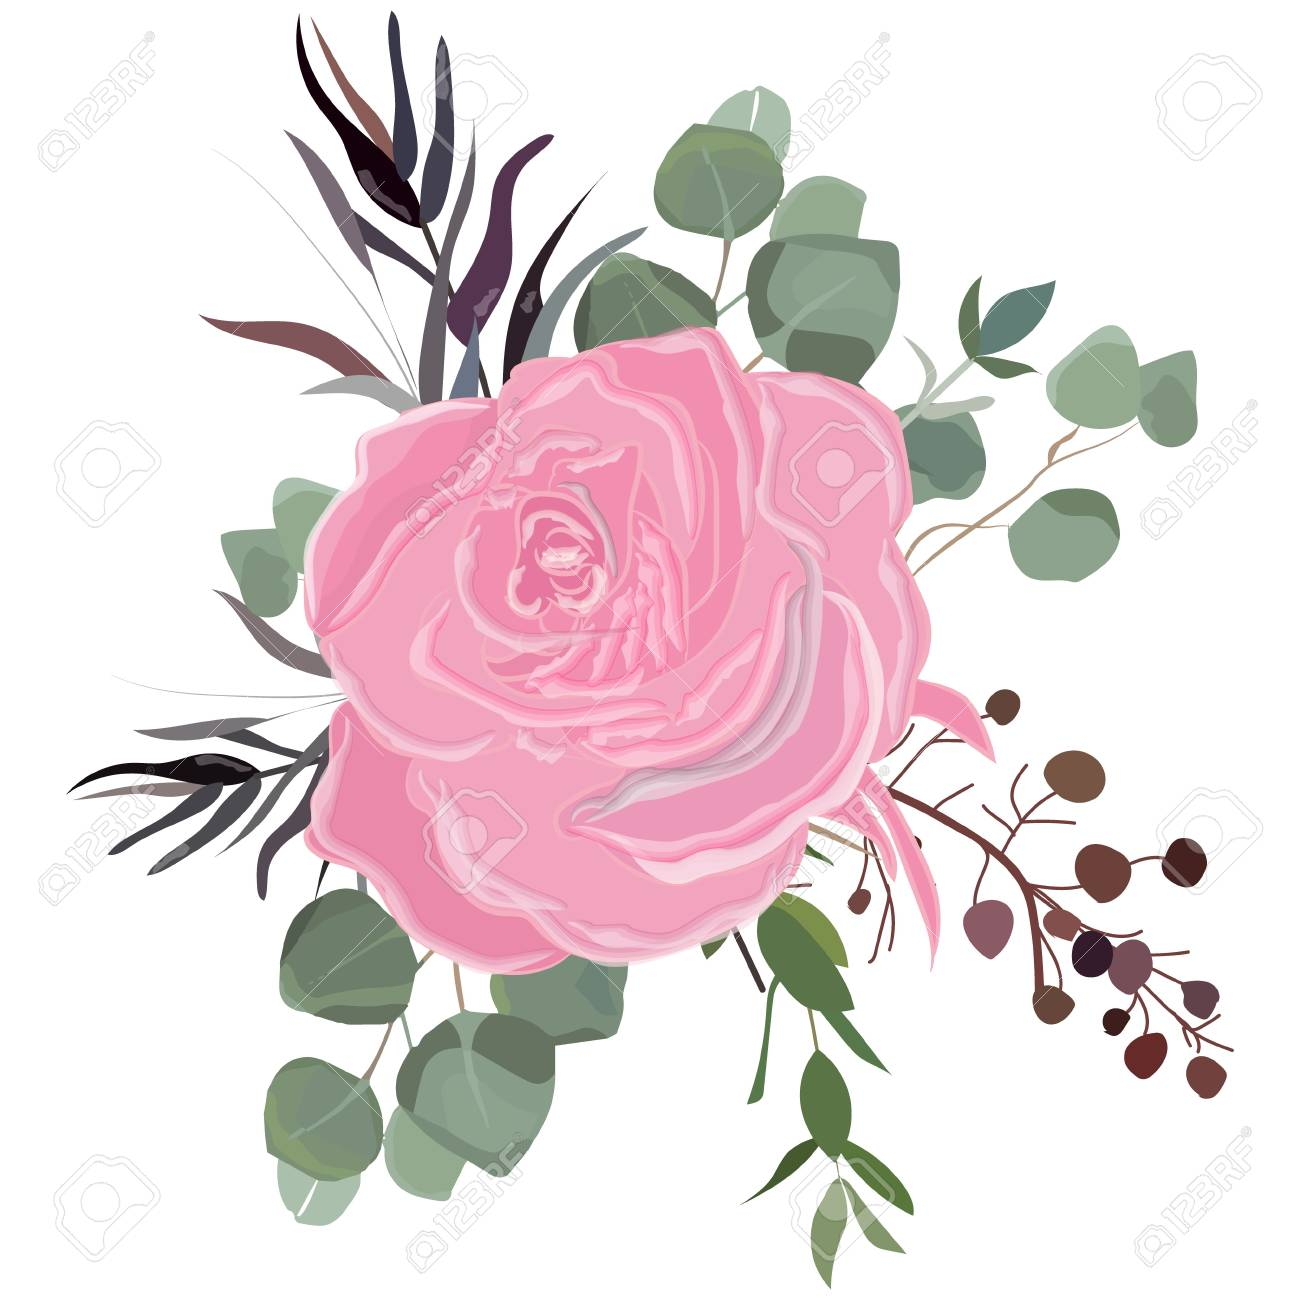 Delicate bouquet for your beloved, vector illustration for wedding and anniversary cards, banners, posters and cards. - 106249096